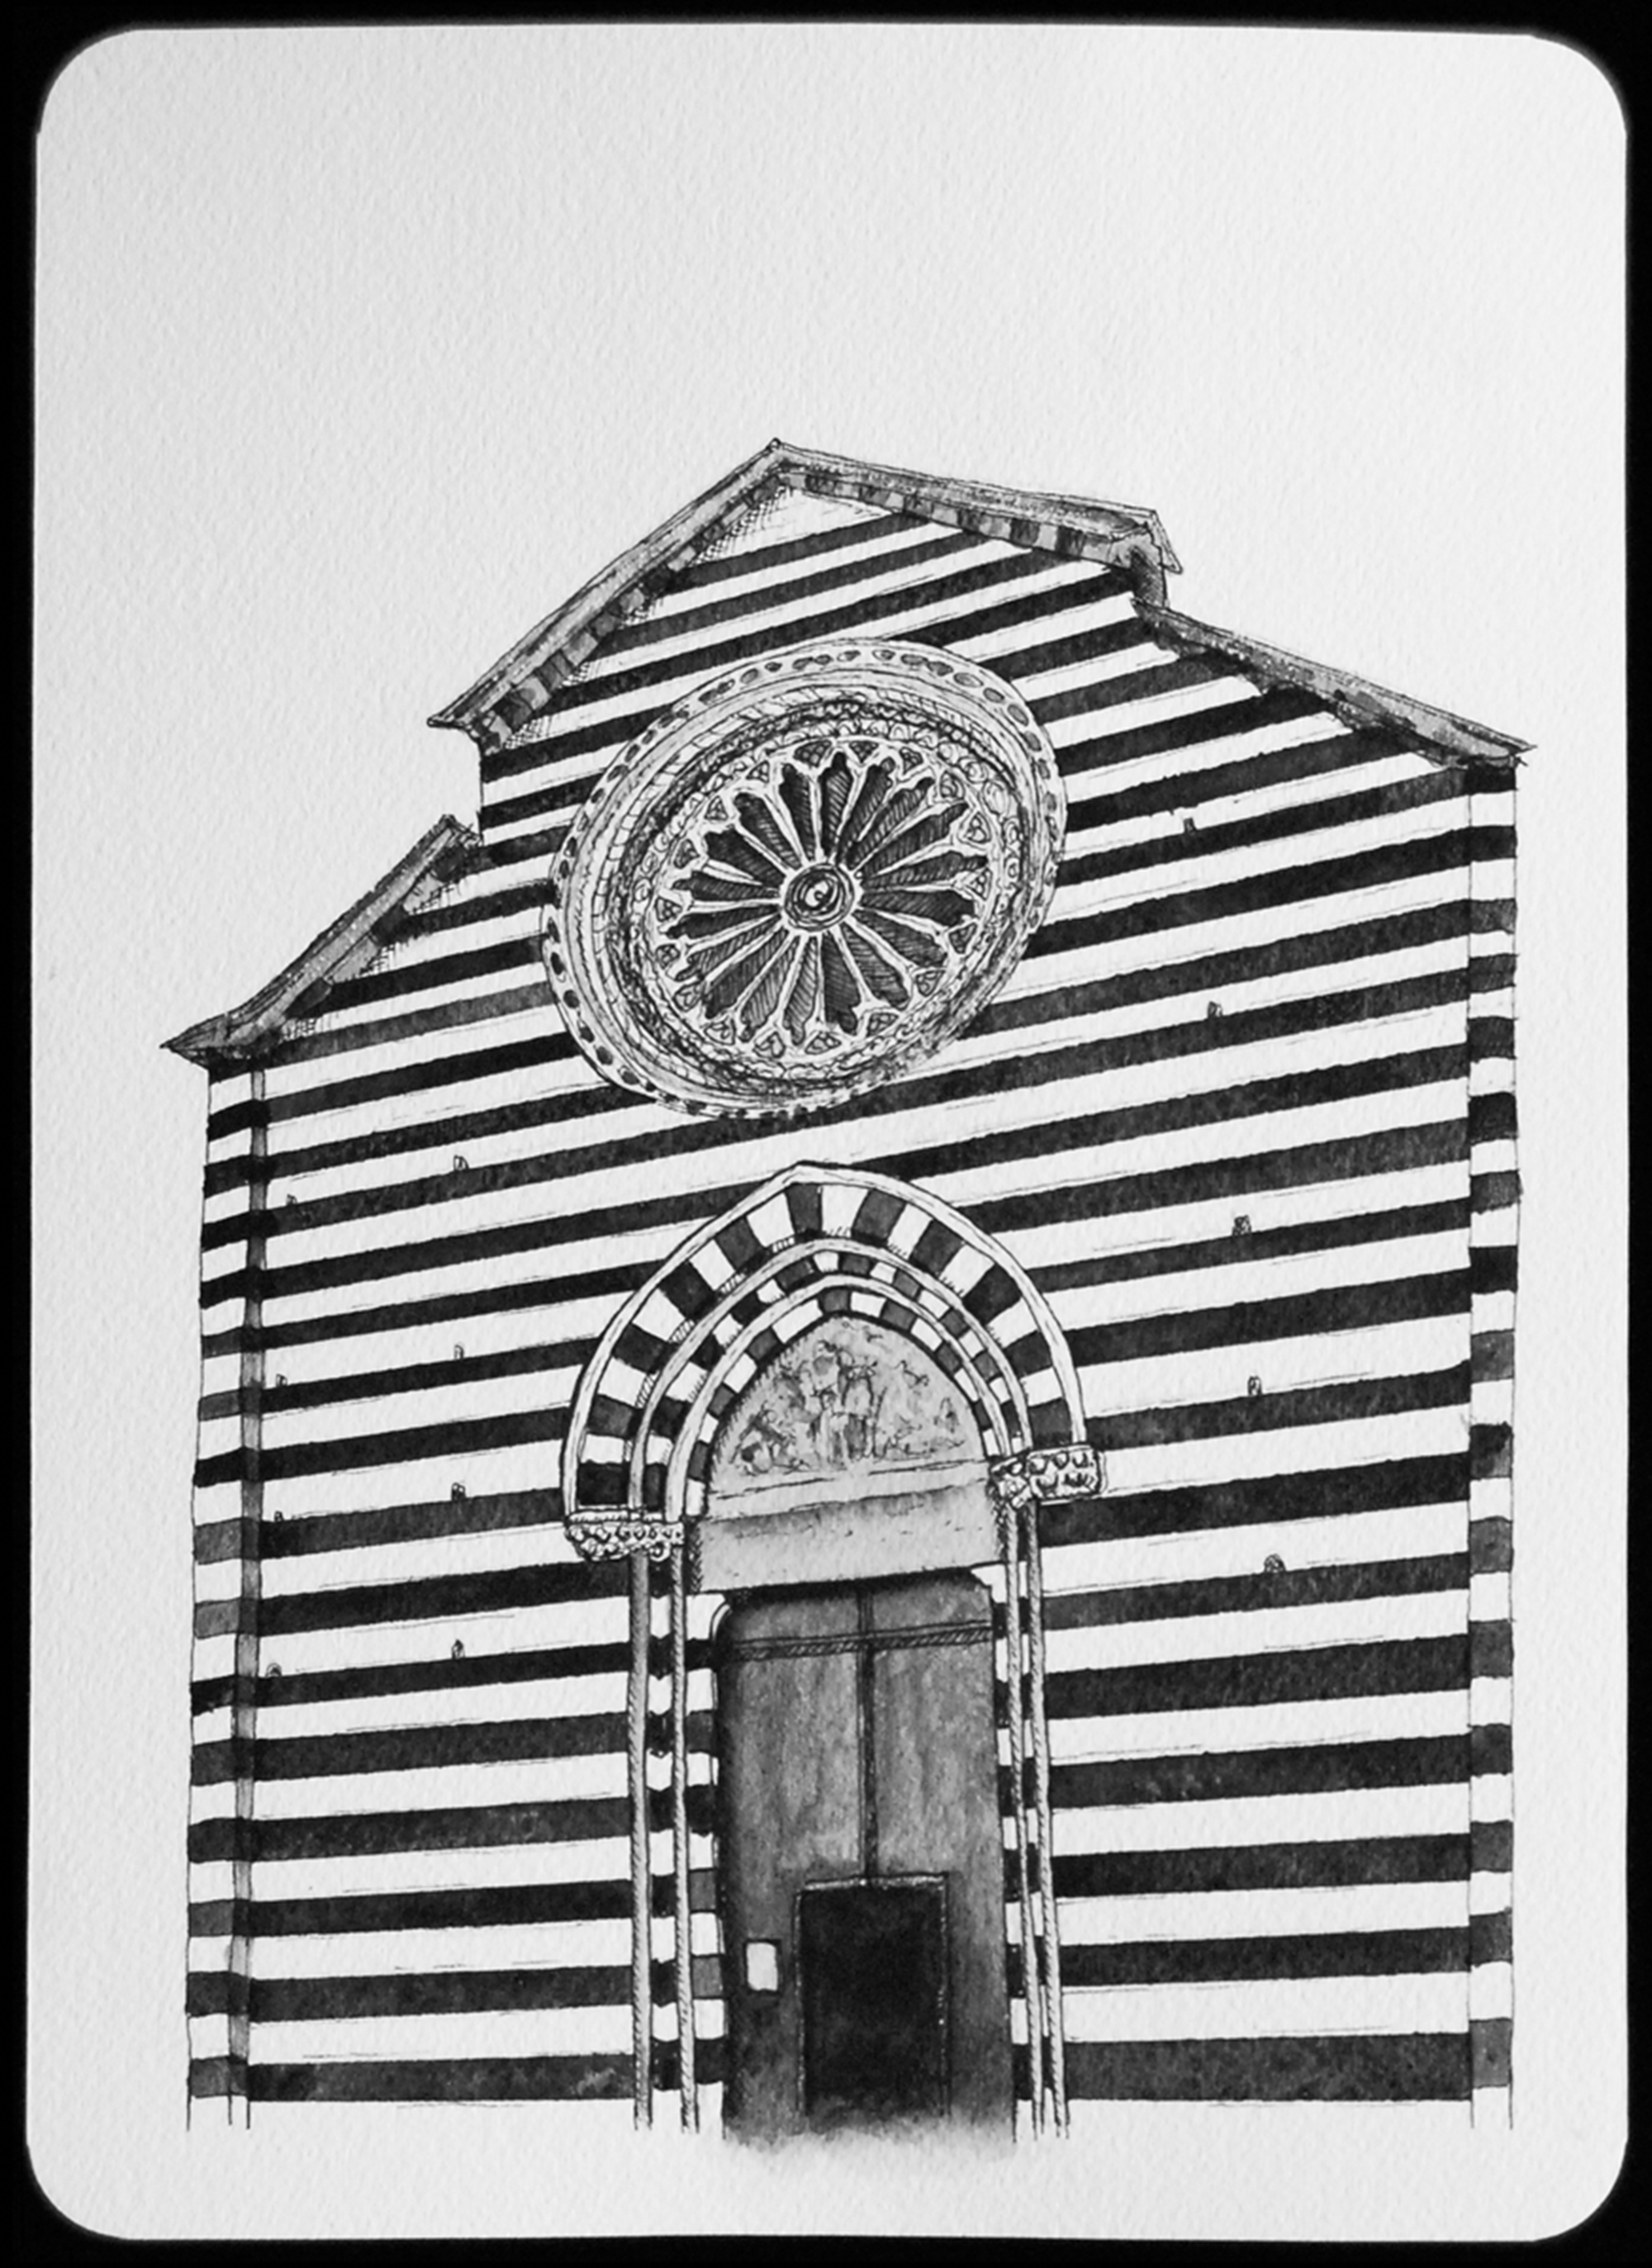 Parish church of St. John the Baptist Monterroso al Mare, northern Italy, 1282-1307, 2011  |  11 x 8 inches  |  archival ink and gouache on paper